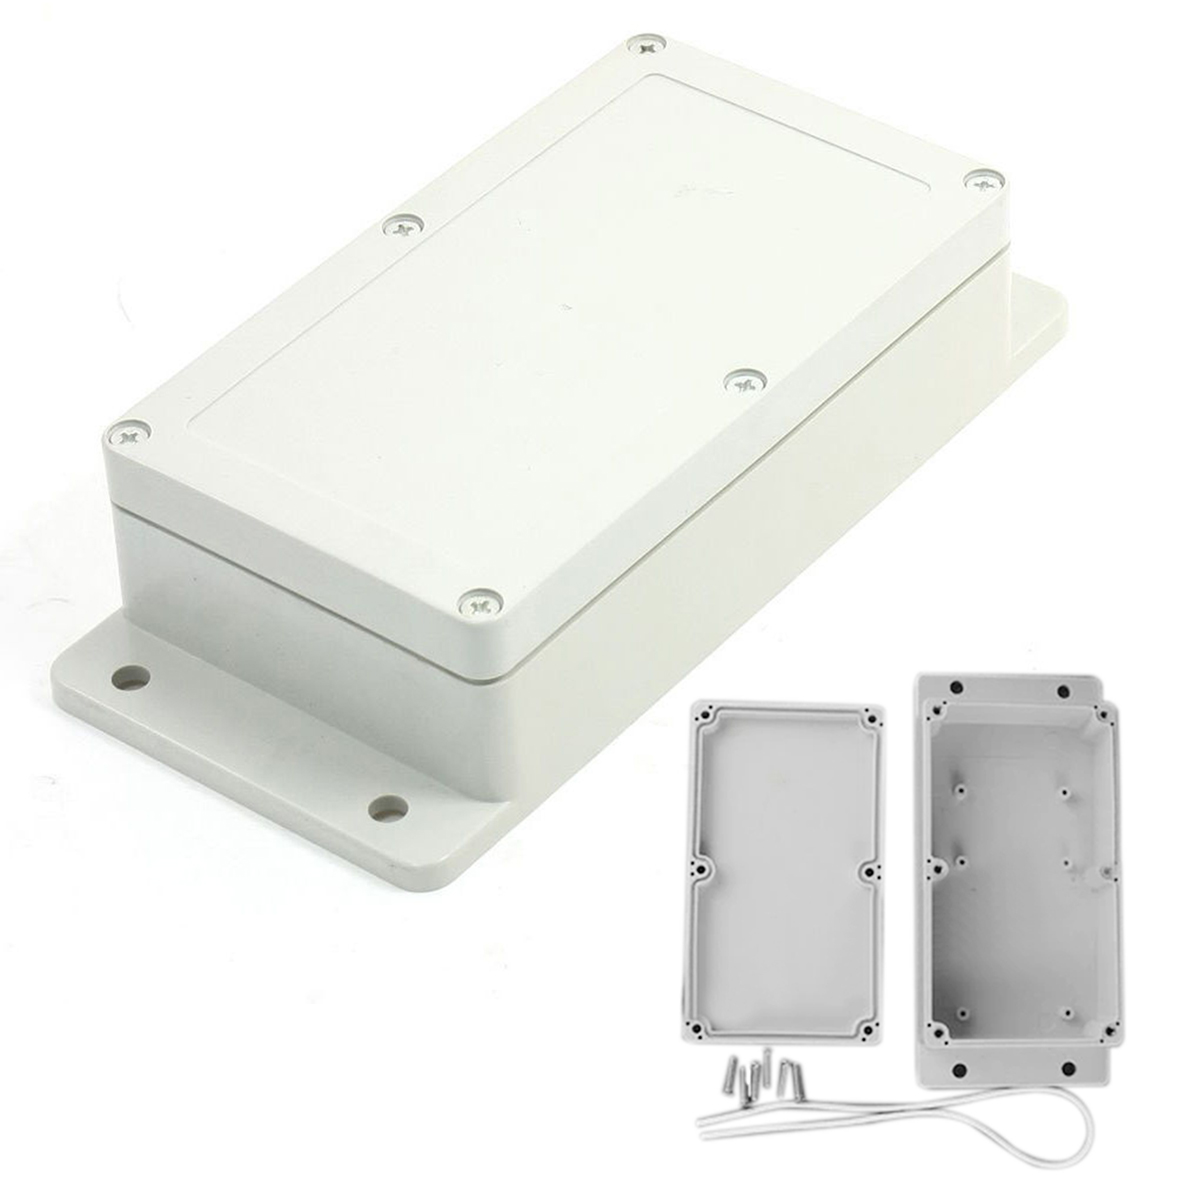 Waterproof Power Junction Box White Plastic Enclosure Case 158mmx90mmx46mm For Electronic Project Instrument waterproof abs plastic electronic box white case 6 size